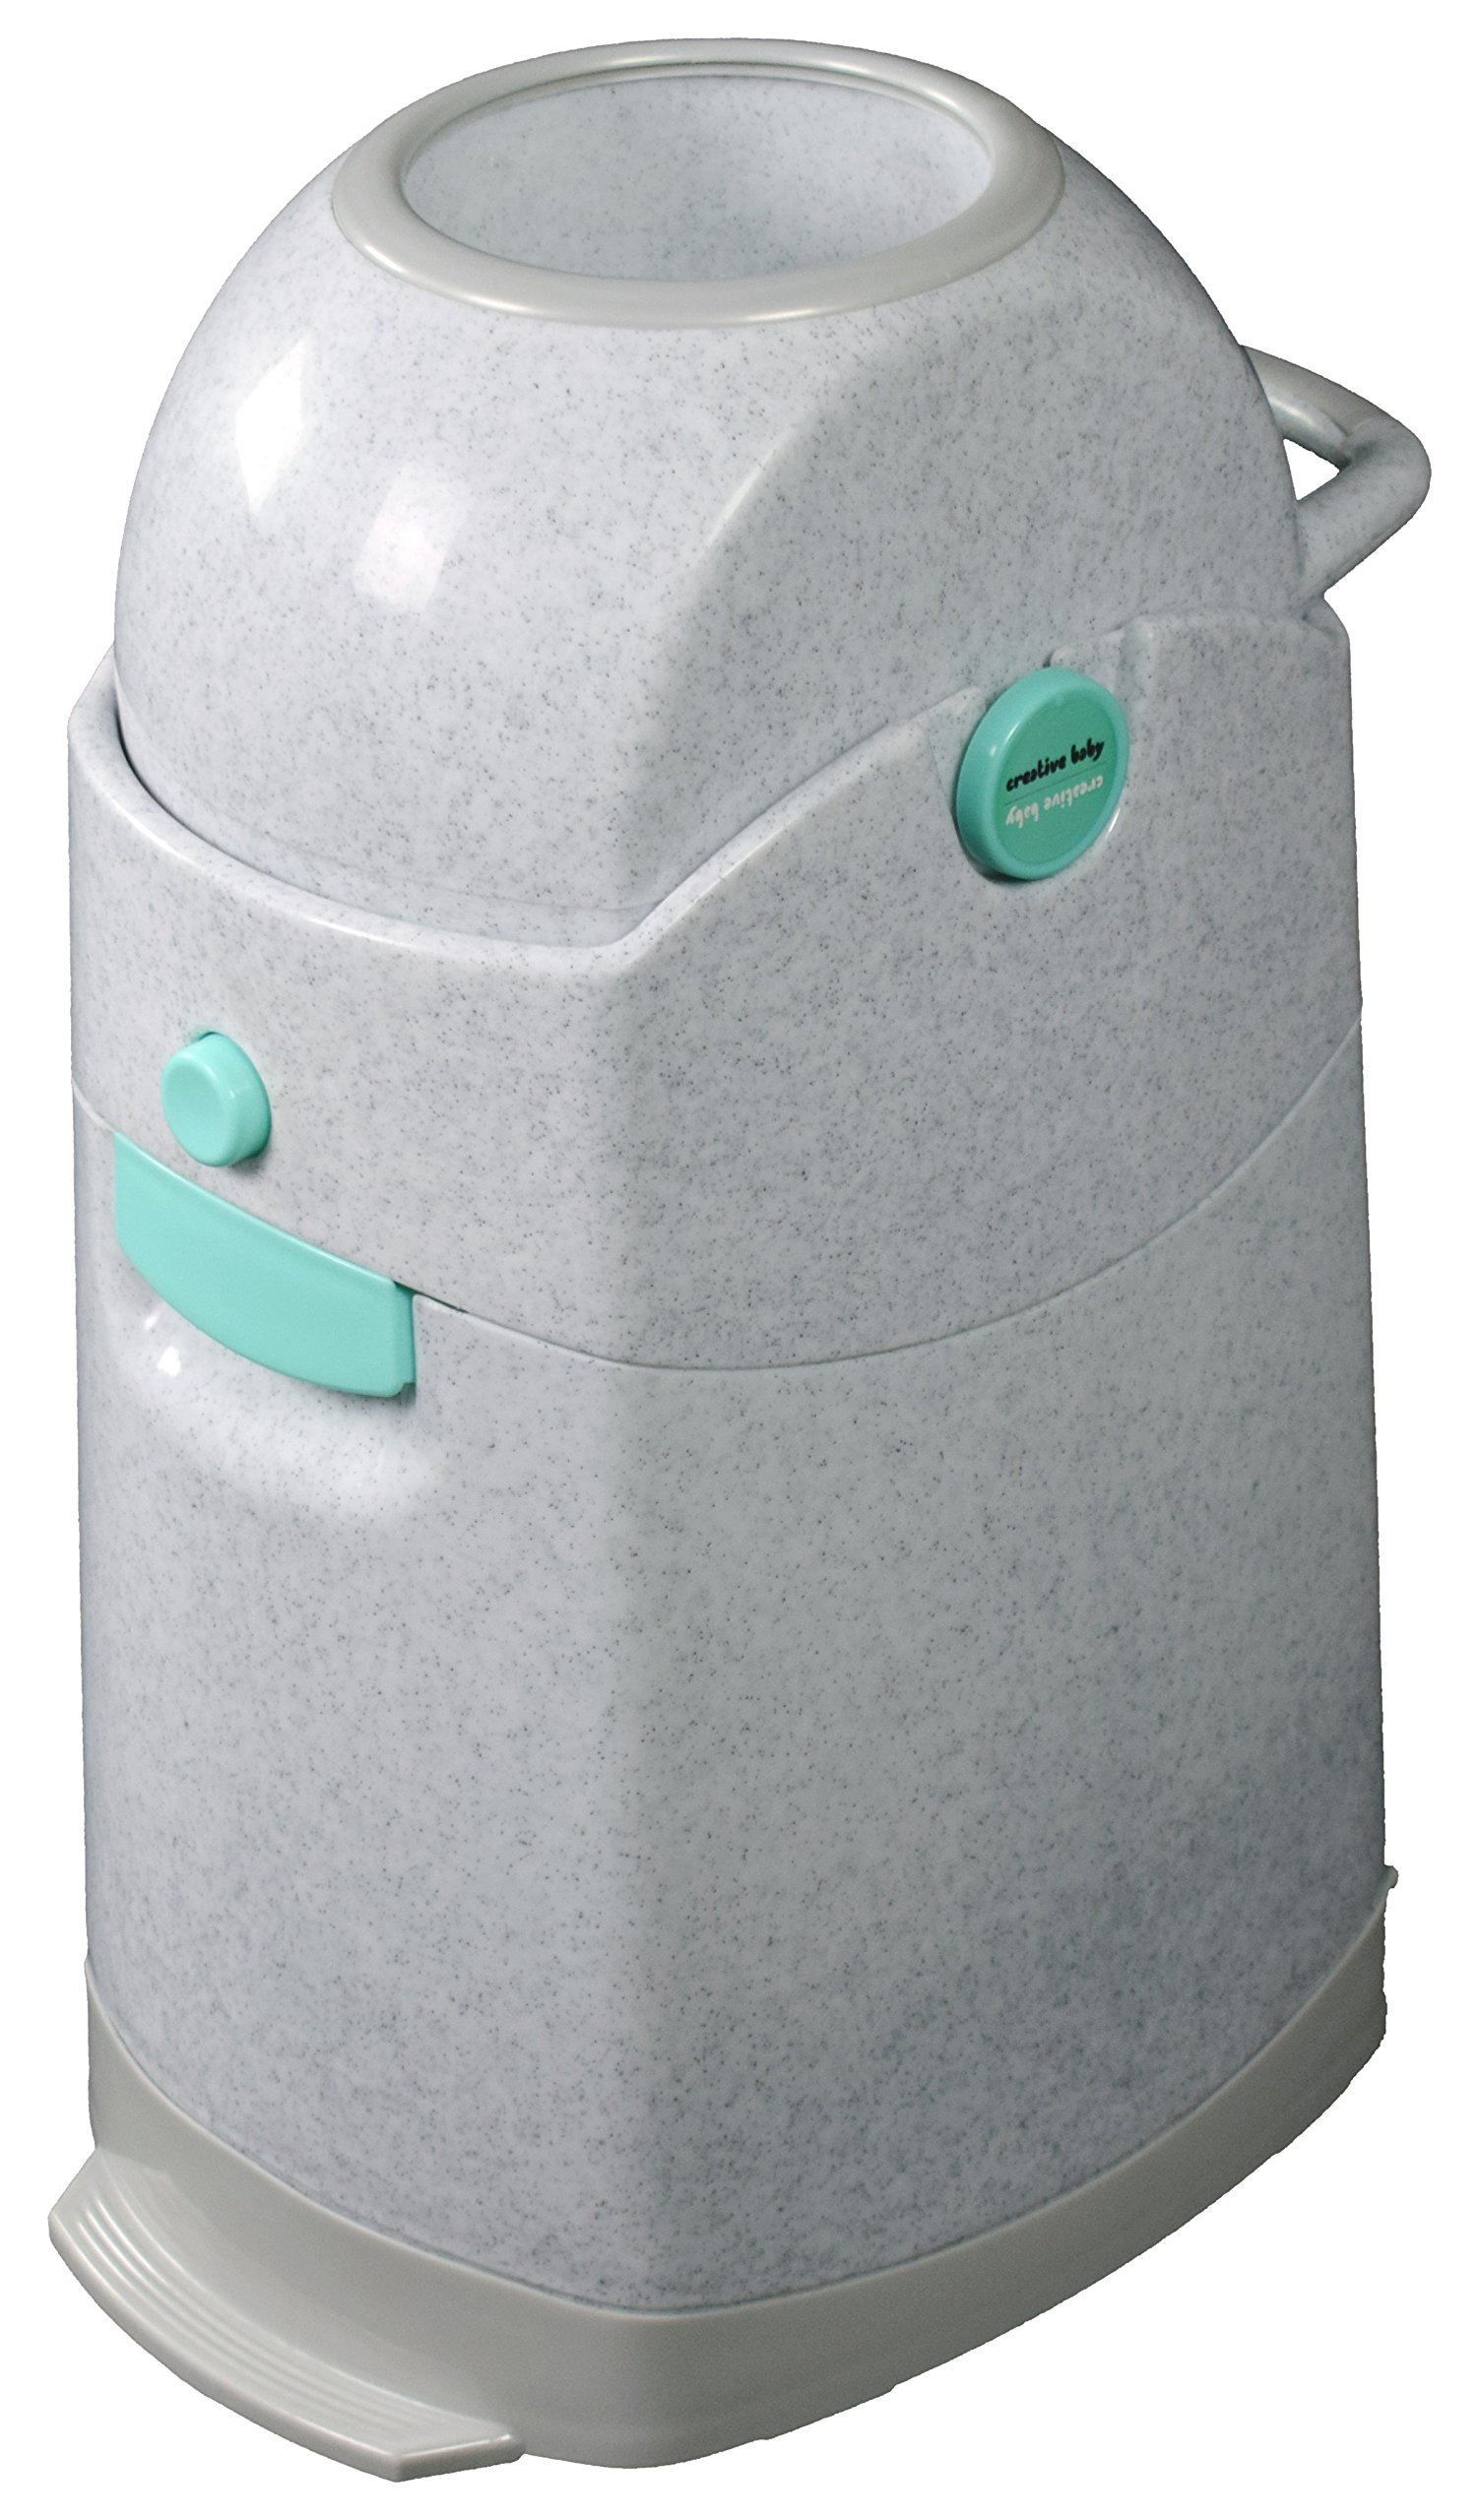 Creative Baby Tidy Diaper Pail, Marble, Marble/Blue/Gray, One Size